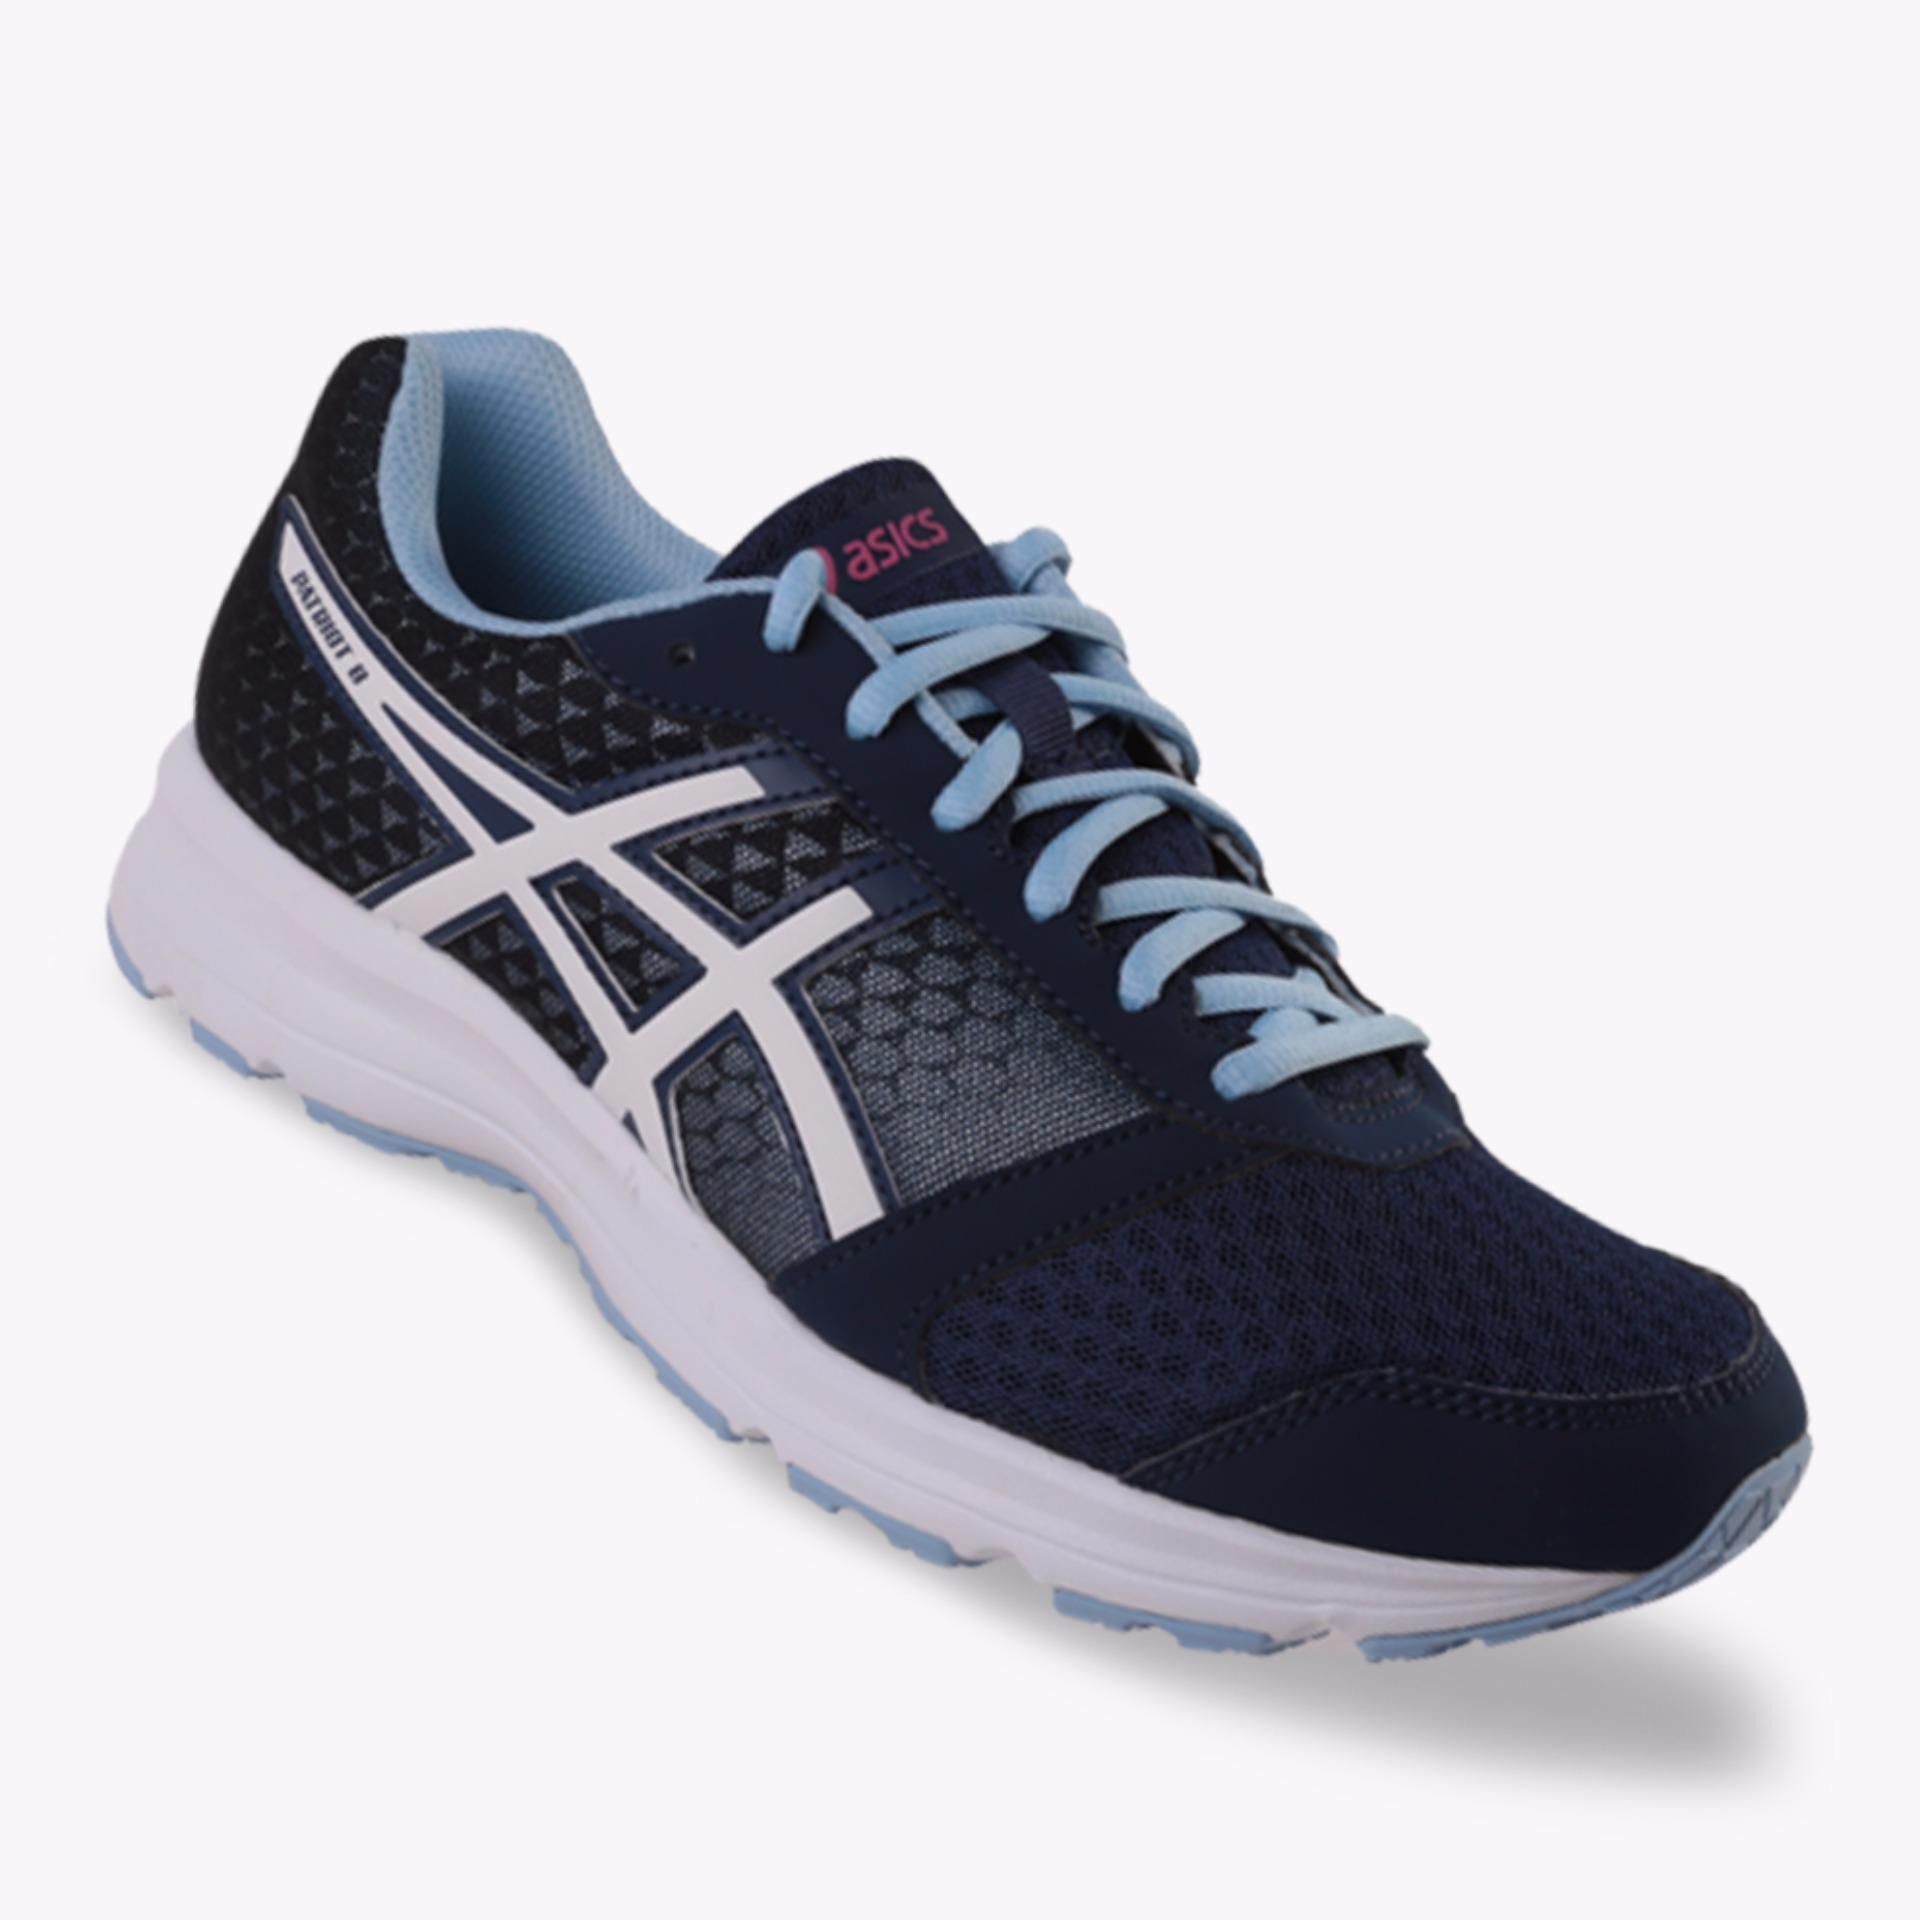 Toko Asics Patriot 8 Women S Running Shoes Standard Wide Navy Di Indonesia